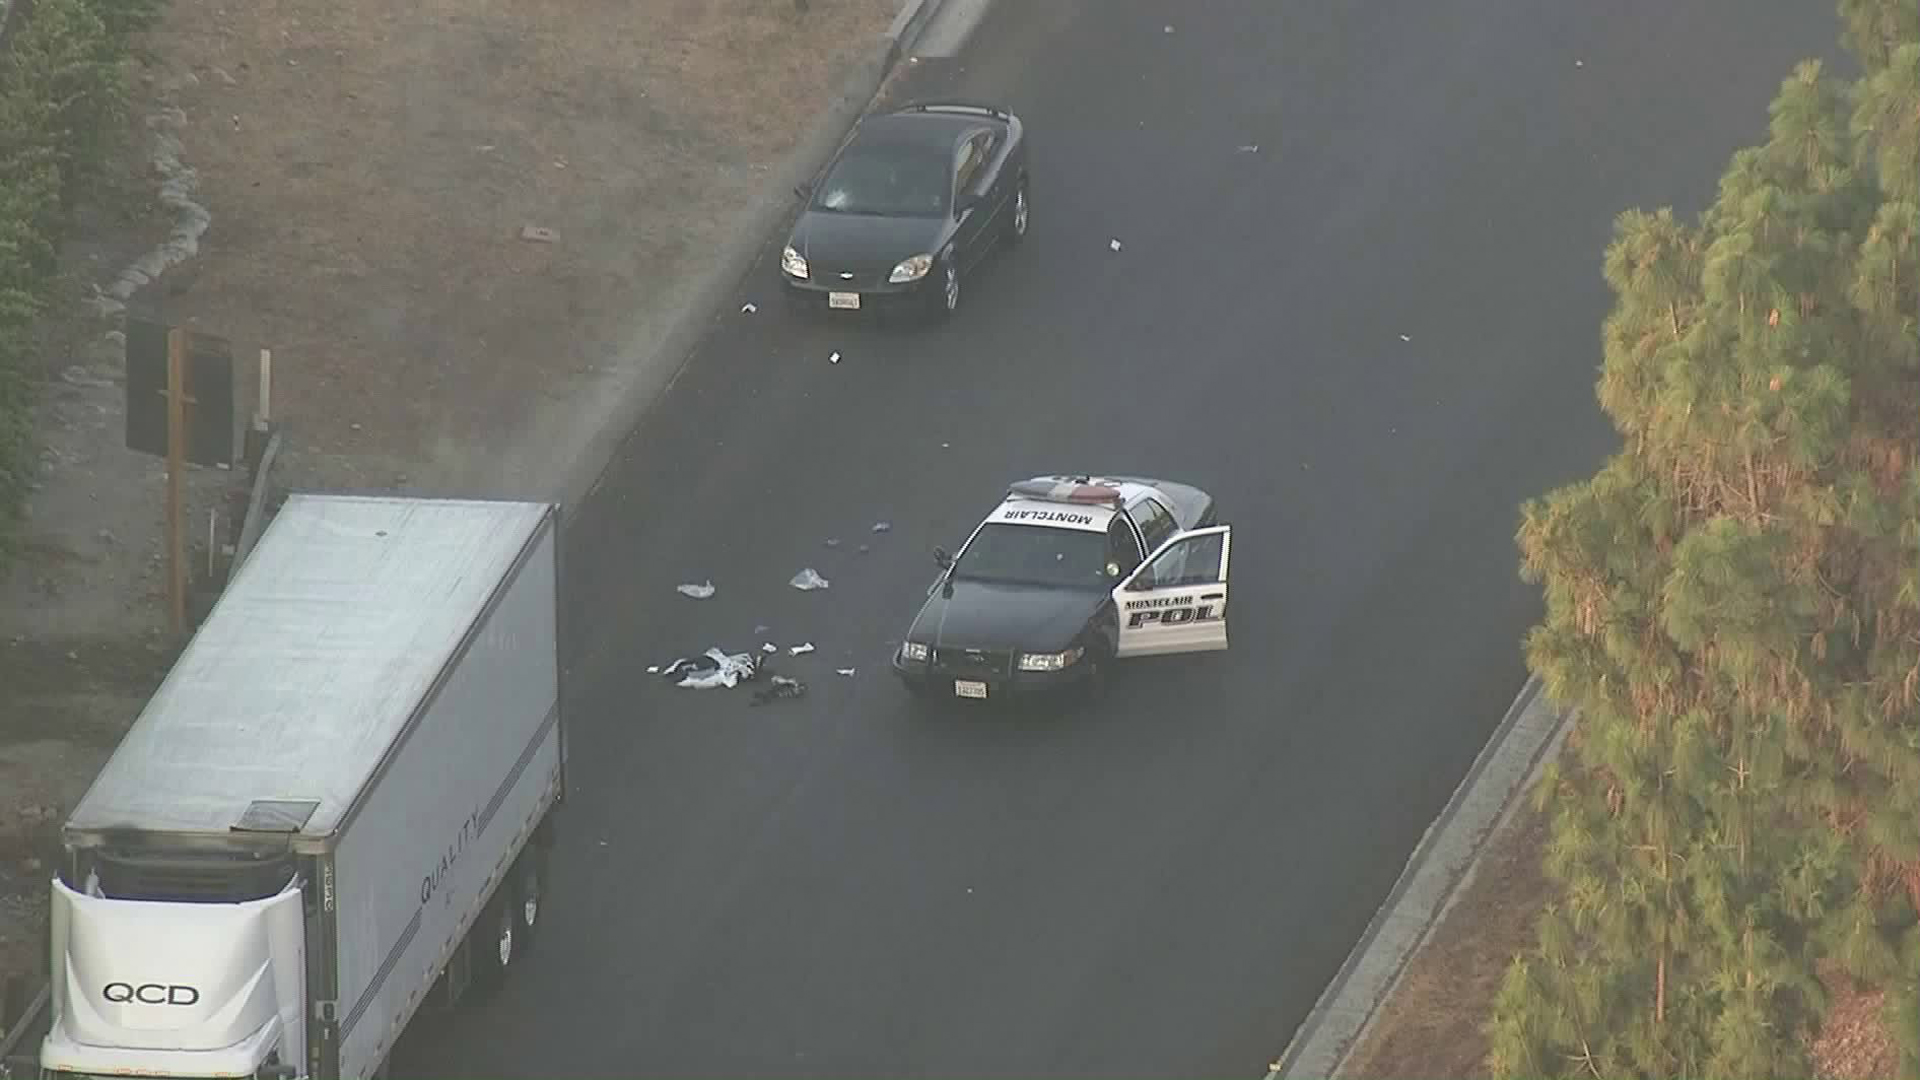 The aftermath of an officer involved shooting of a man who allegedly threw rocks at passing motorists near the 10 Freeway in Montclair is shown from Sky5 on Sept. 12, 2018. (Credit: KTLA)